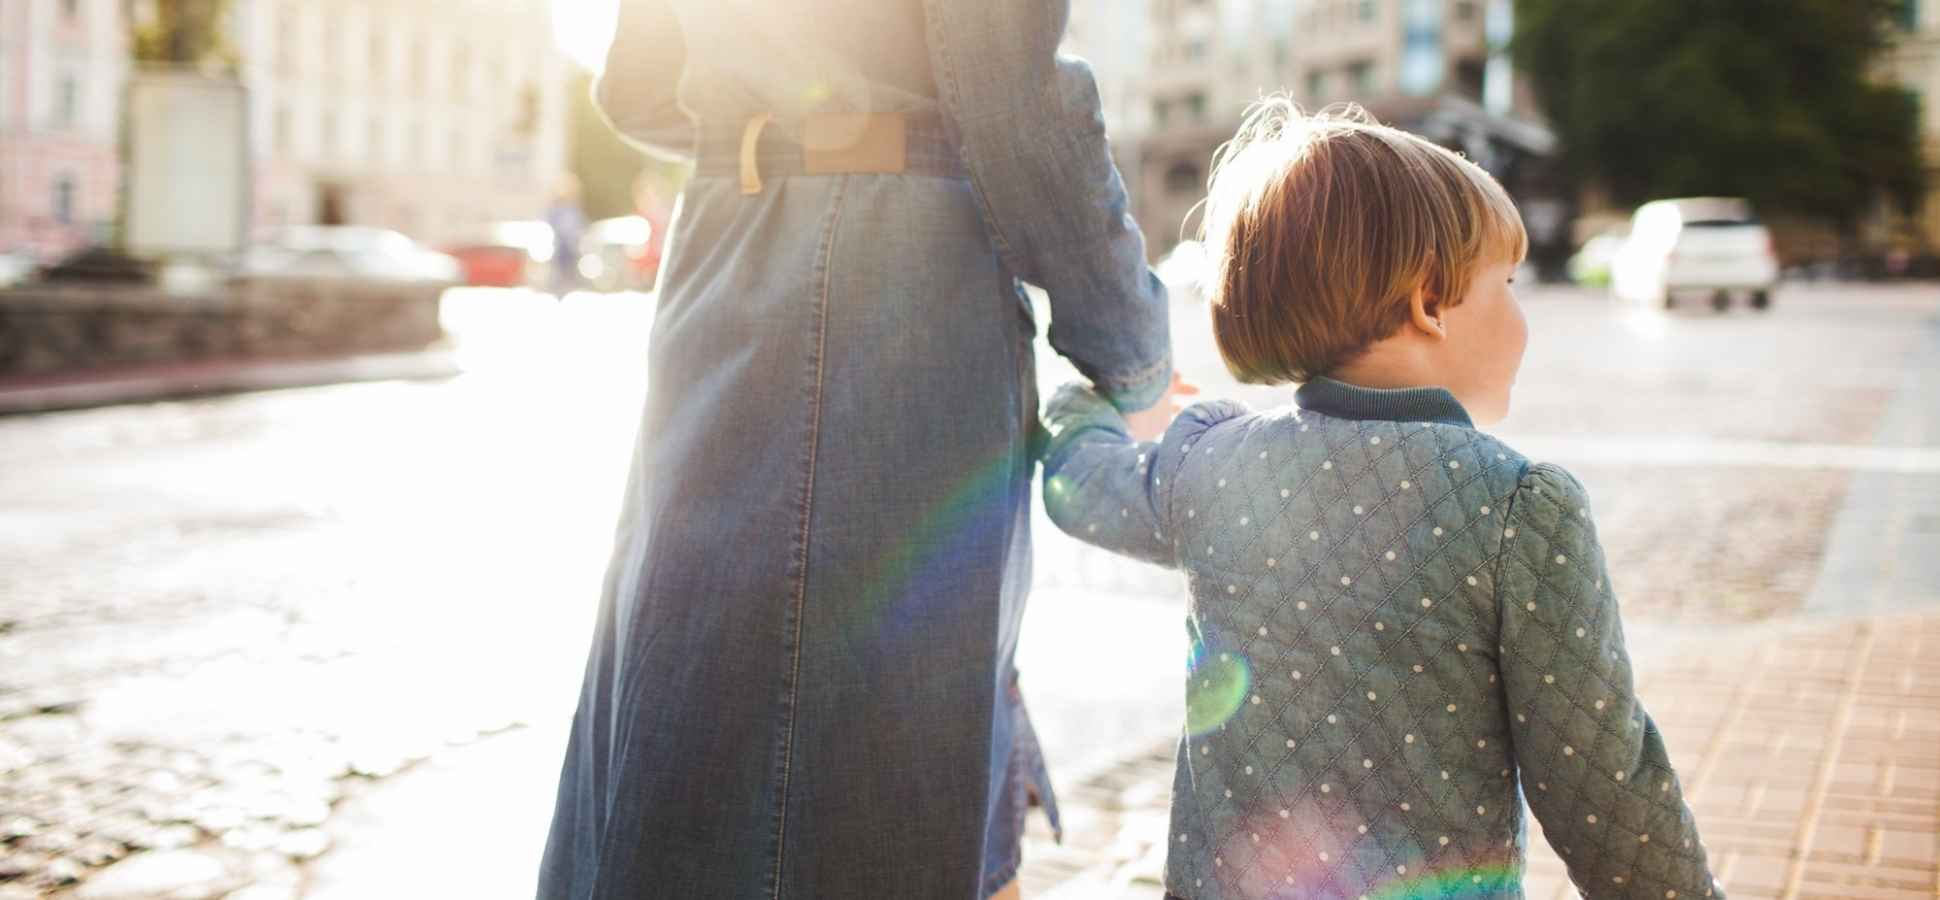 Want Your Kids to Become Financially Secure Adults? Parents of Today's Wealthy Did This, Study Says